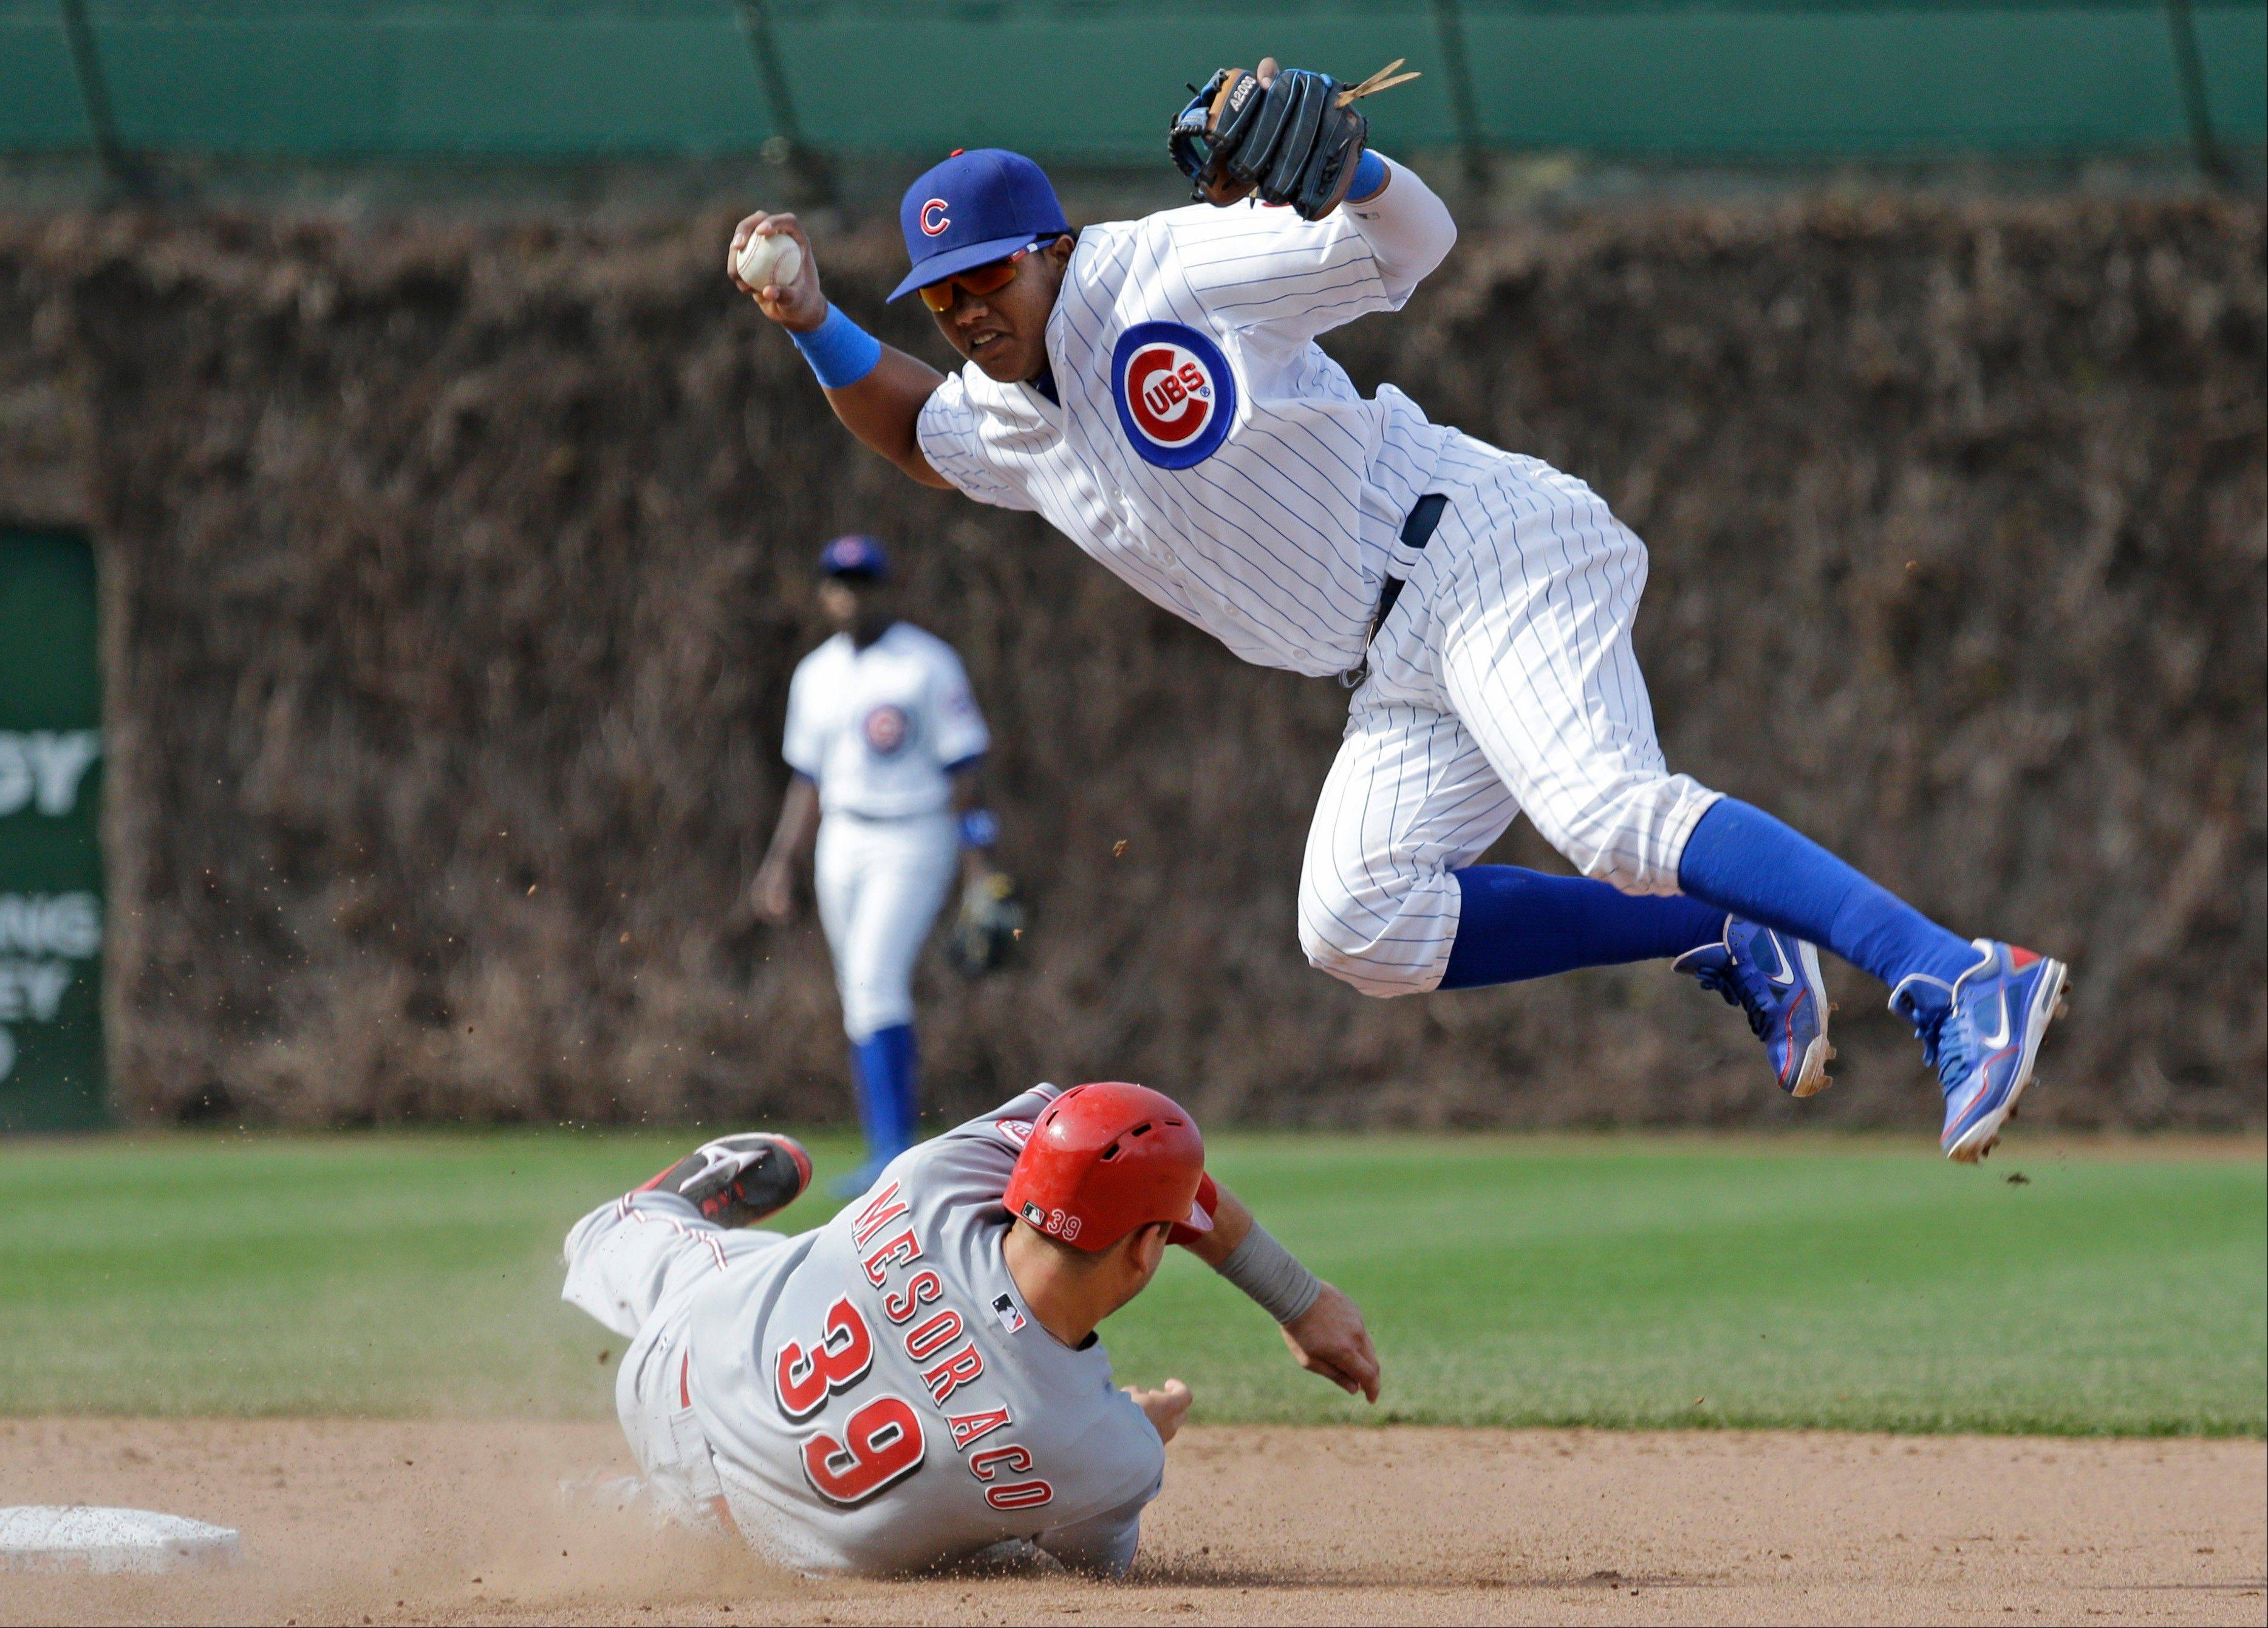 Cubs shortstop Starlin Castro, top, jumps after forcing out Cincinnati Reds� Devin Mesoraco during the eighth inning of an MLB National League baseball game in Chicago, Sunday, May 5, 2013. Cincinnati Reds� Donald Lutz was safe at first.